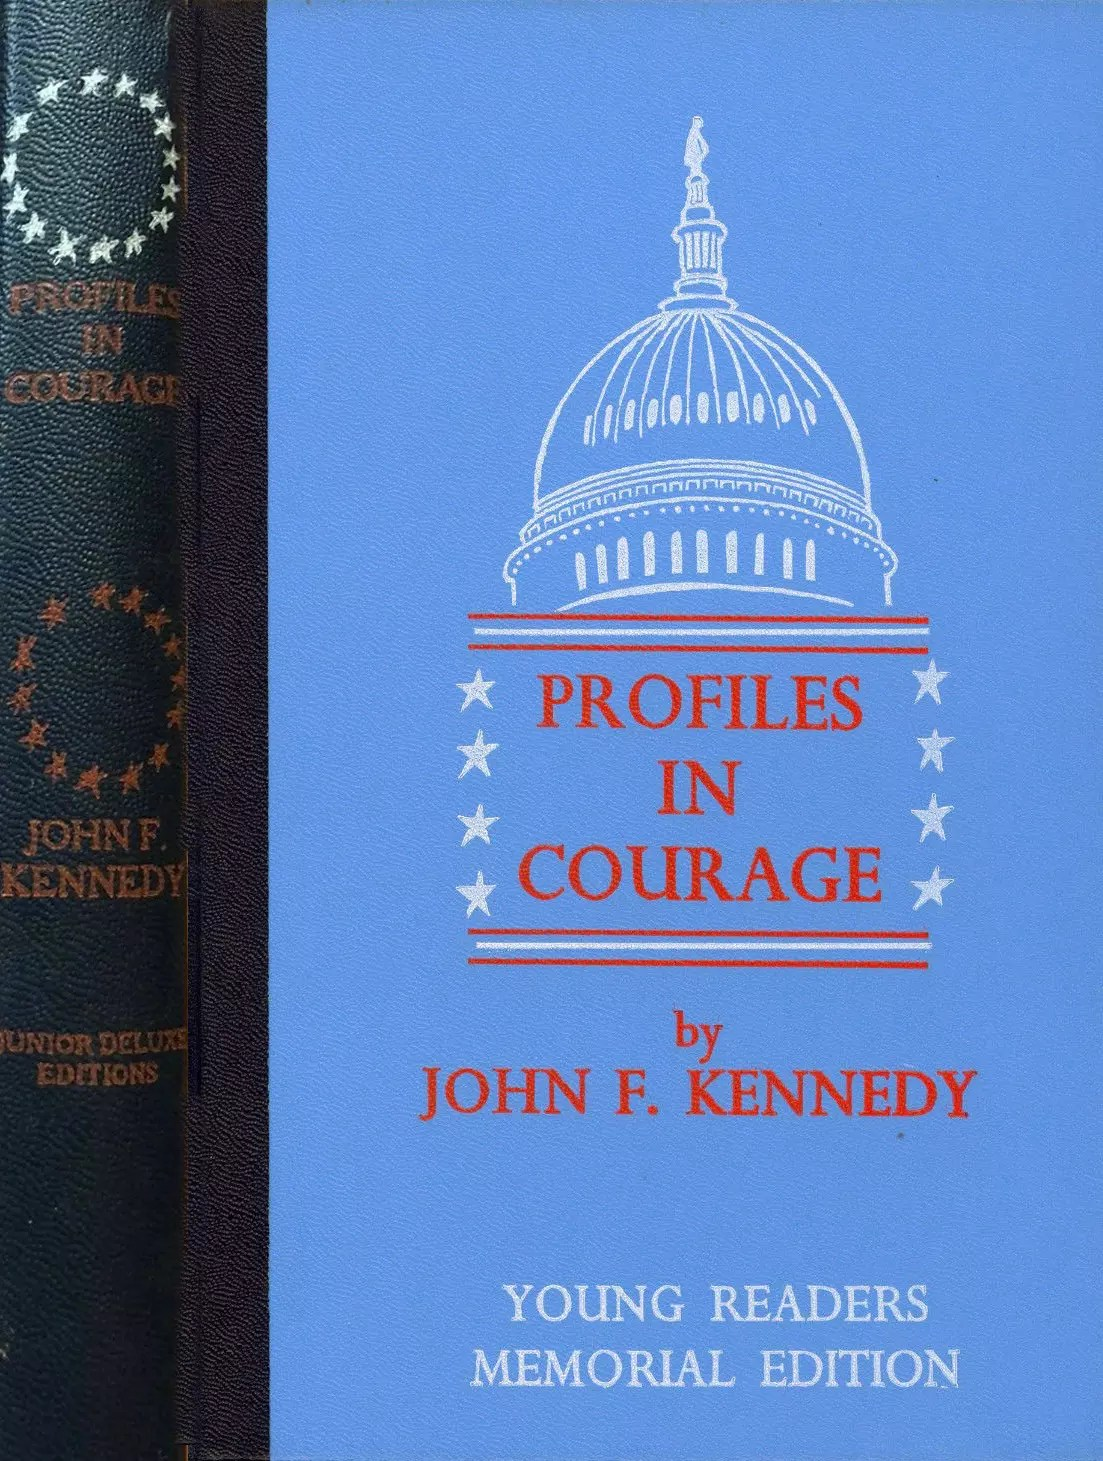 JDE Profiles in Courage FULL cover